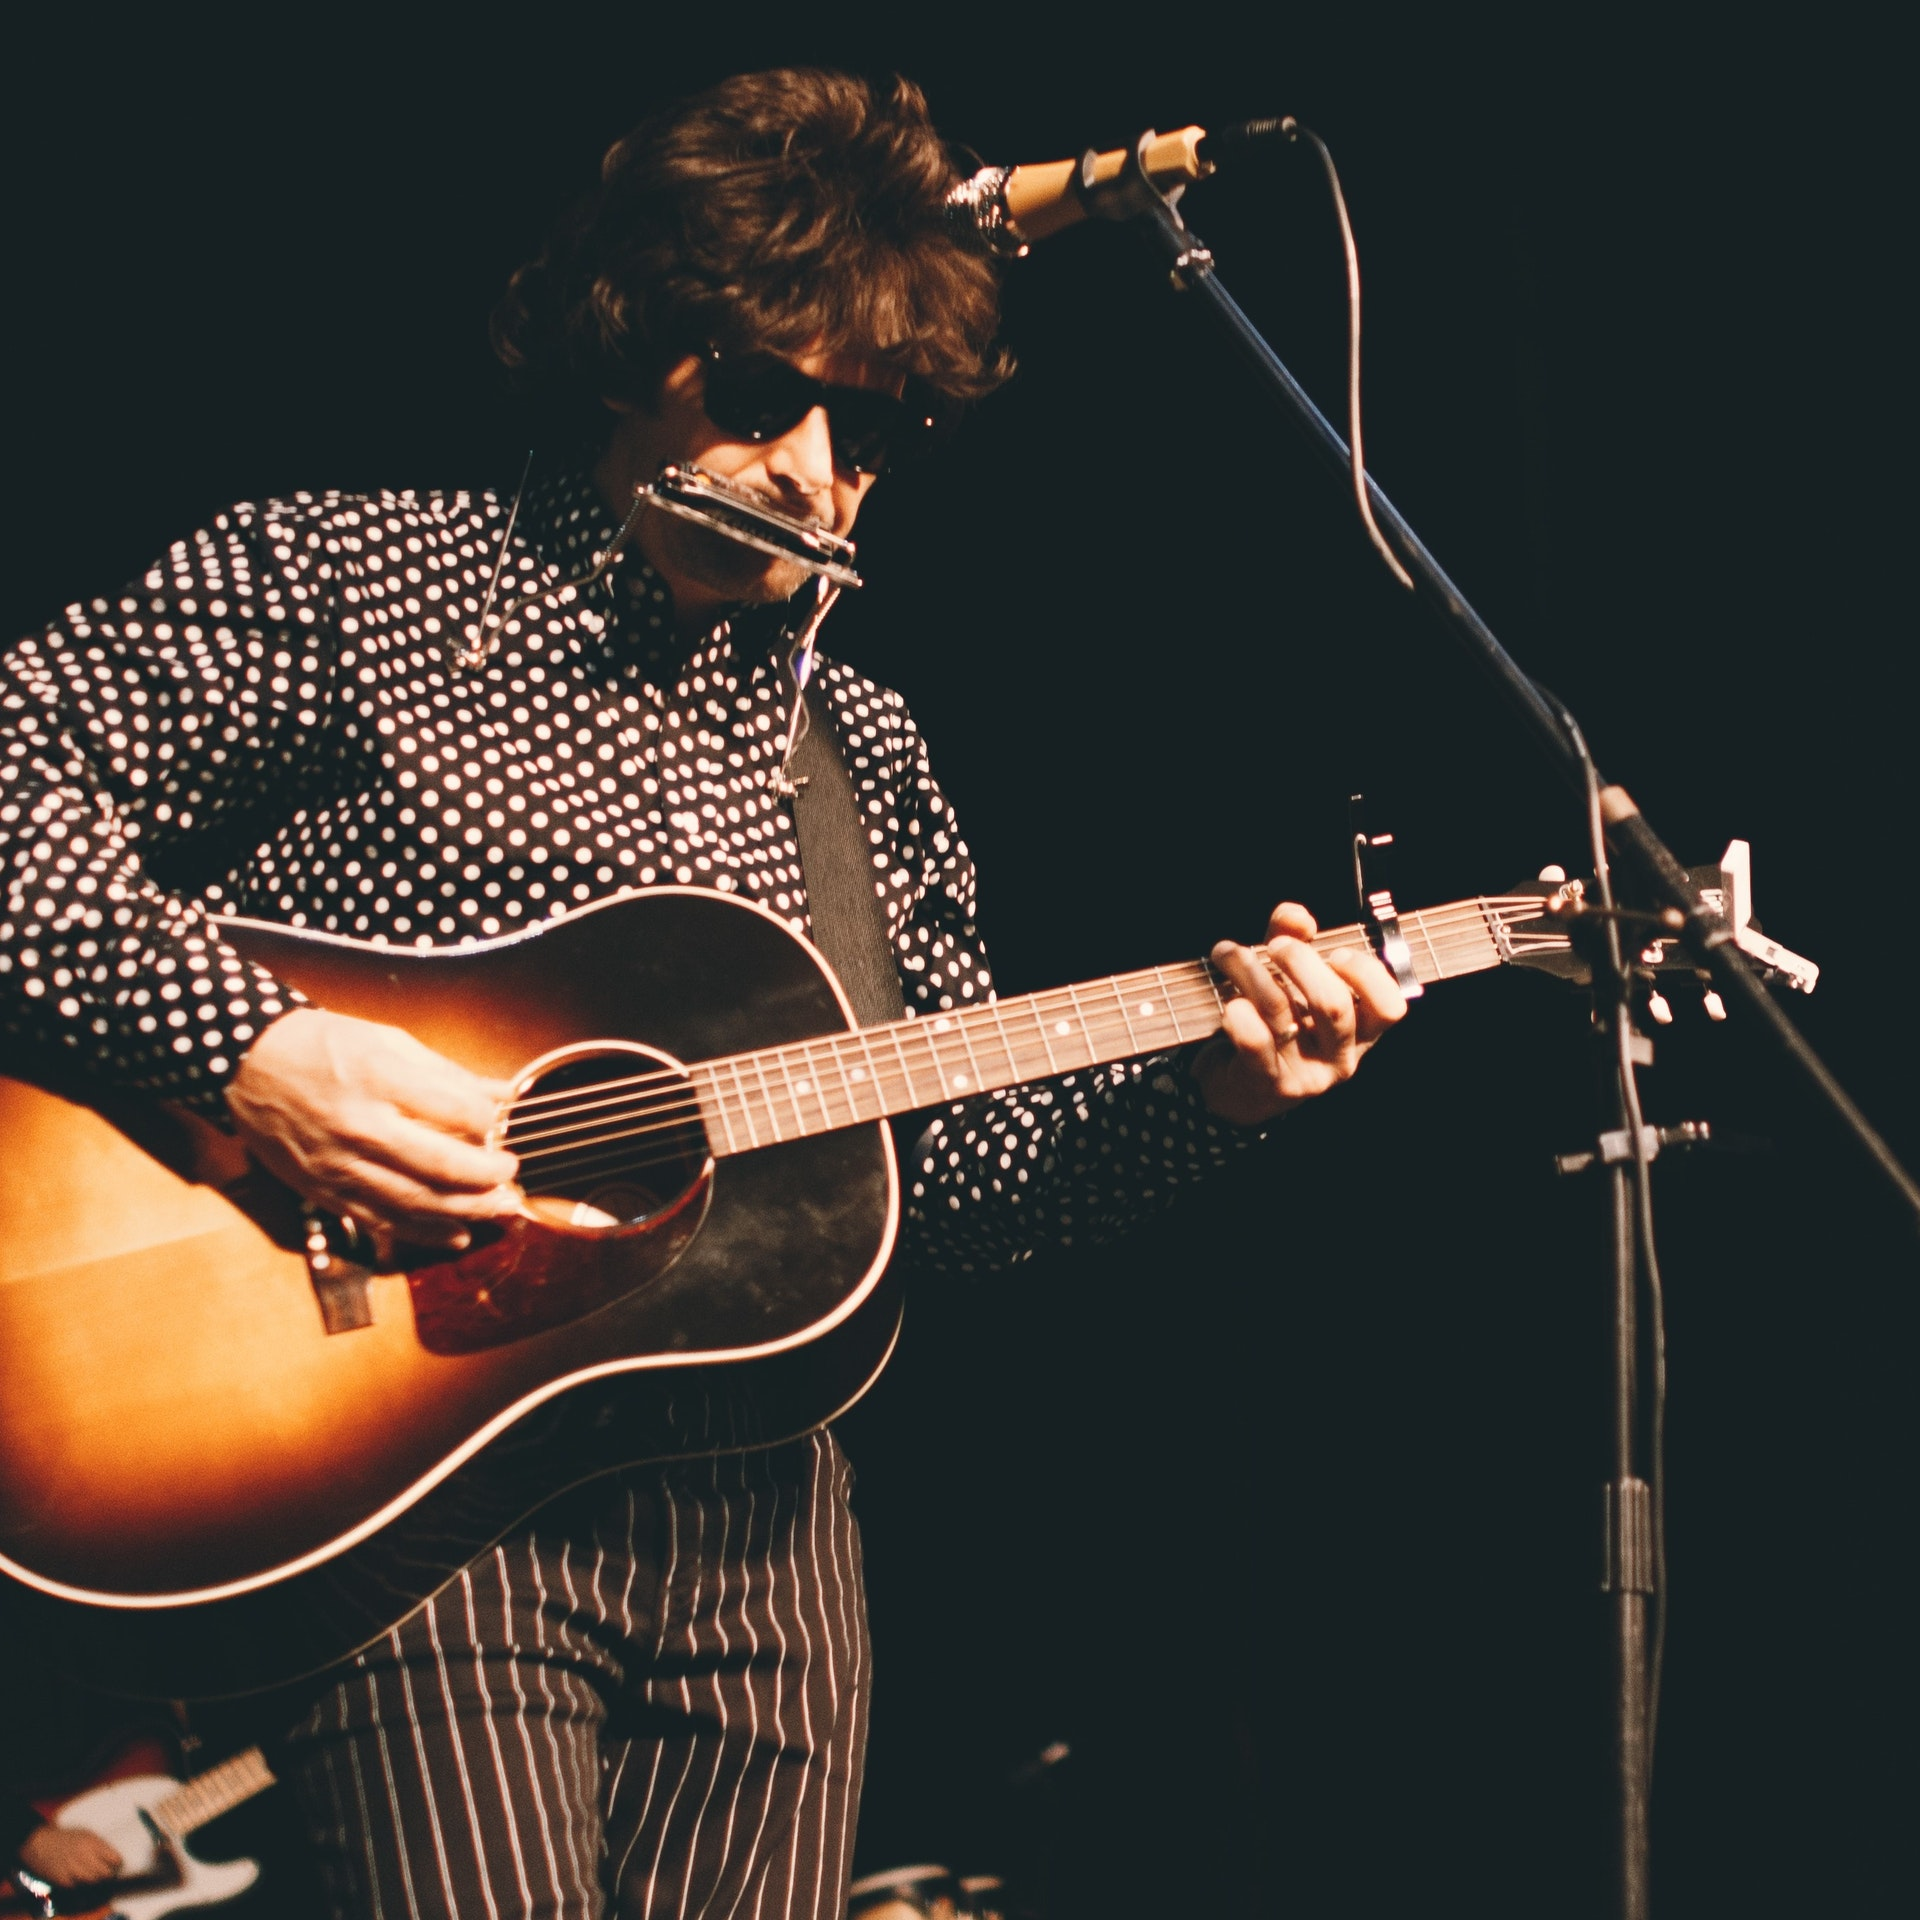 I Took Stunning Photo Of Dylan At >> The Bob Dylan Story Tour Dates Tickets 2019 Ents24